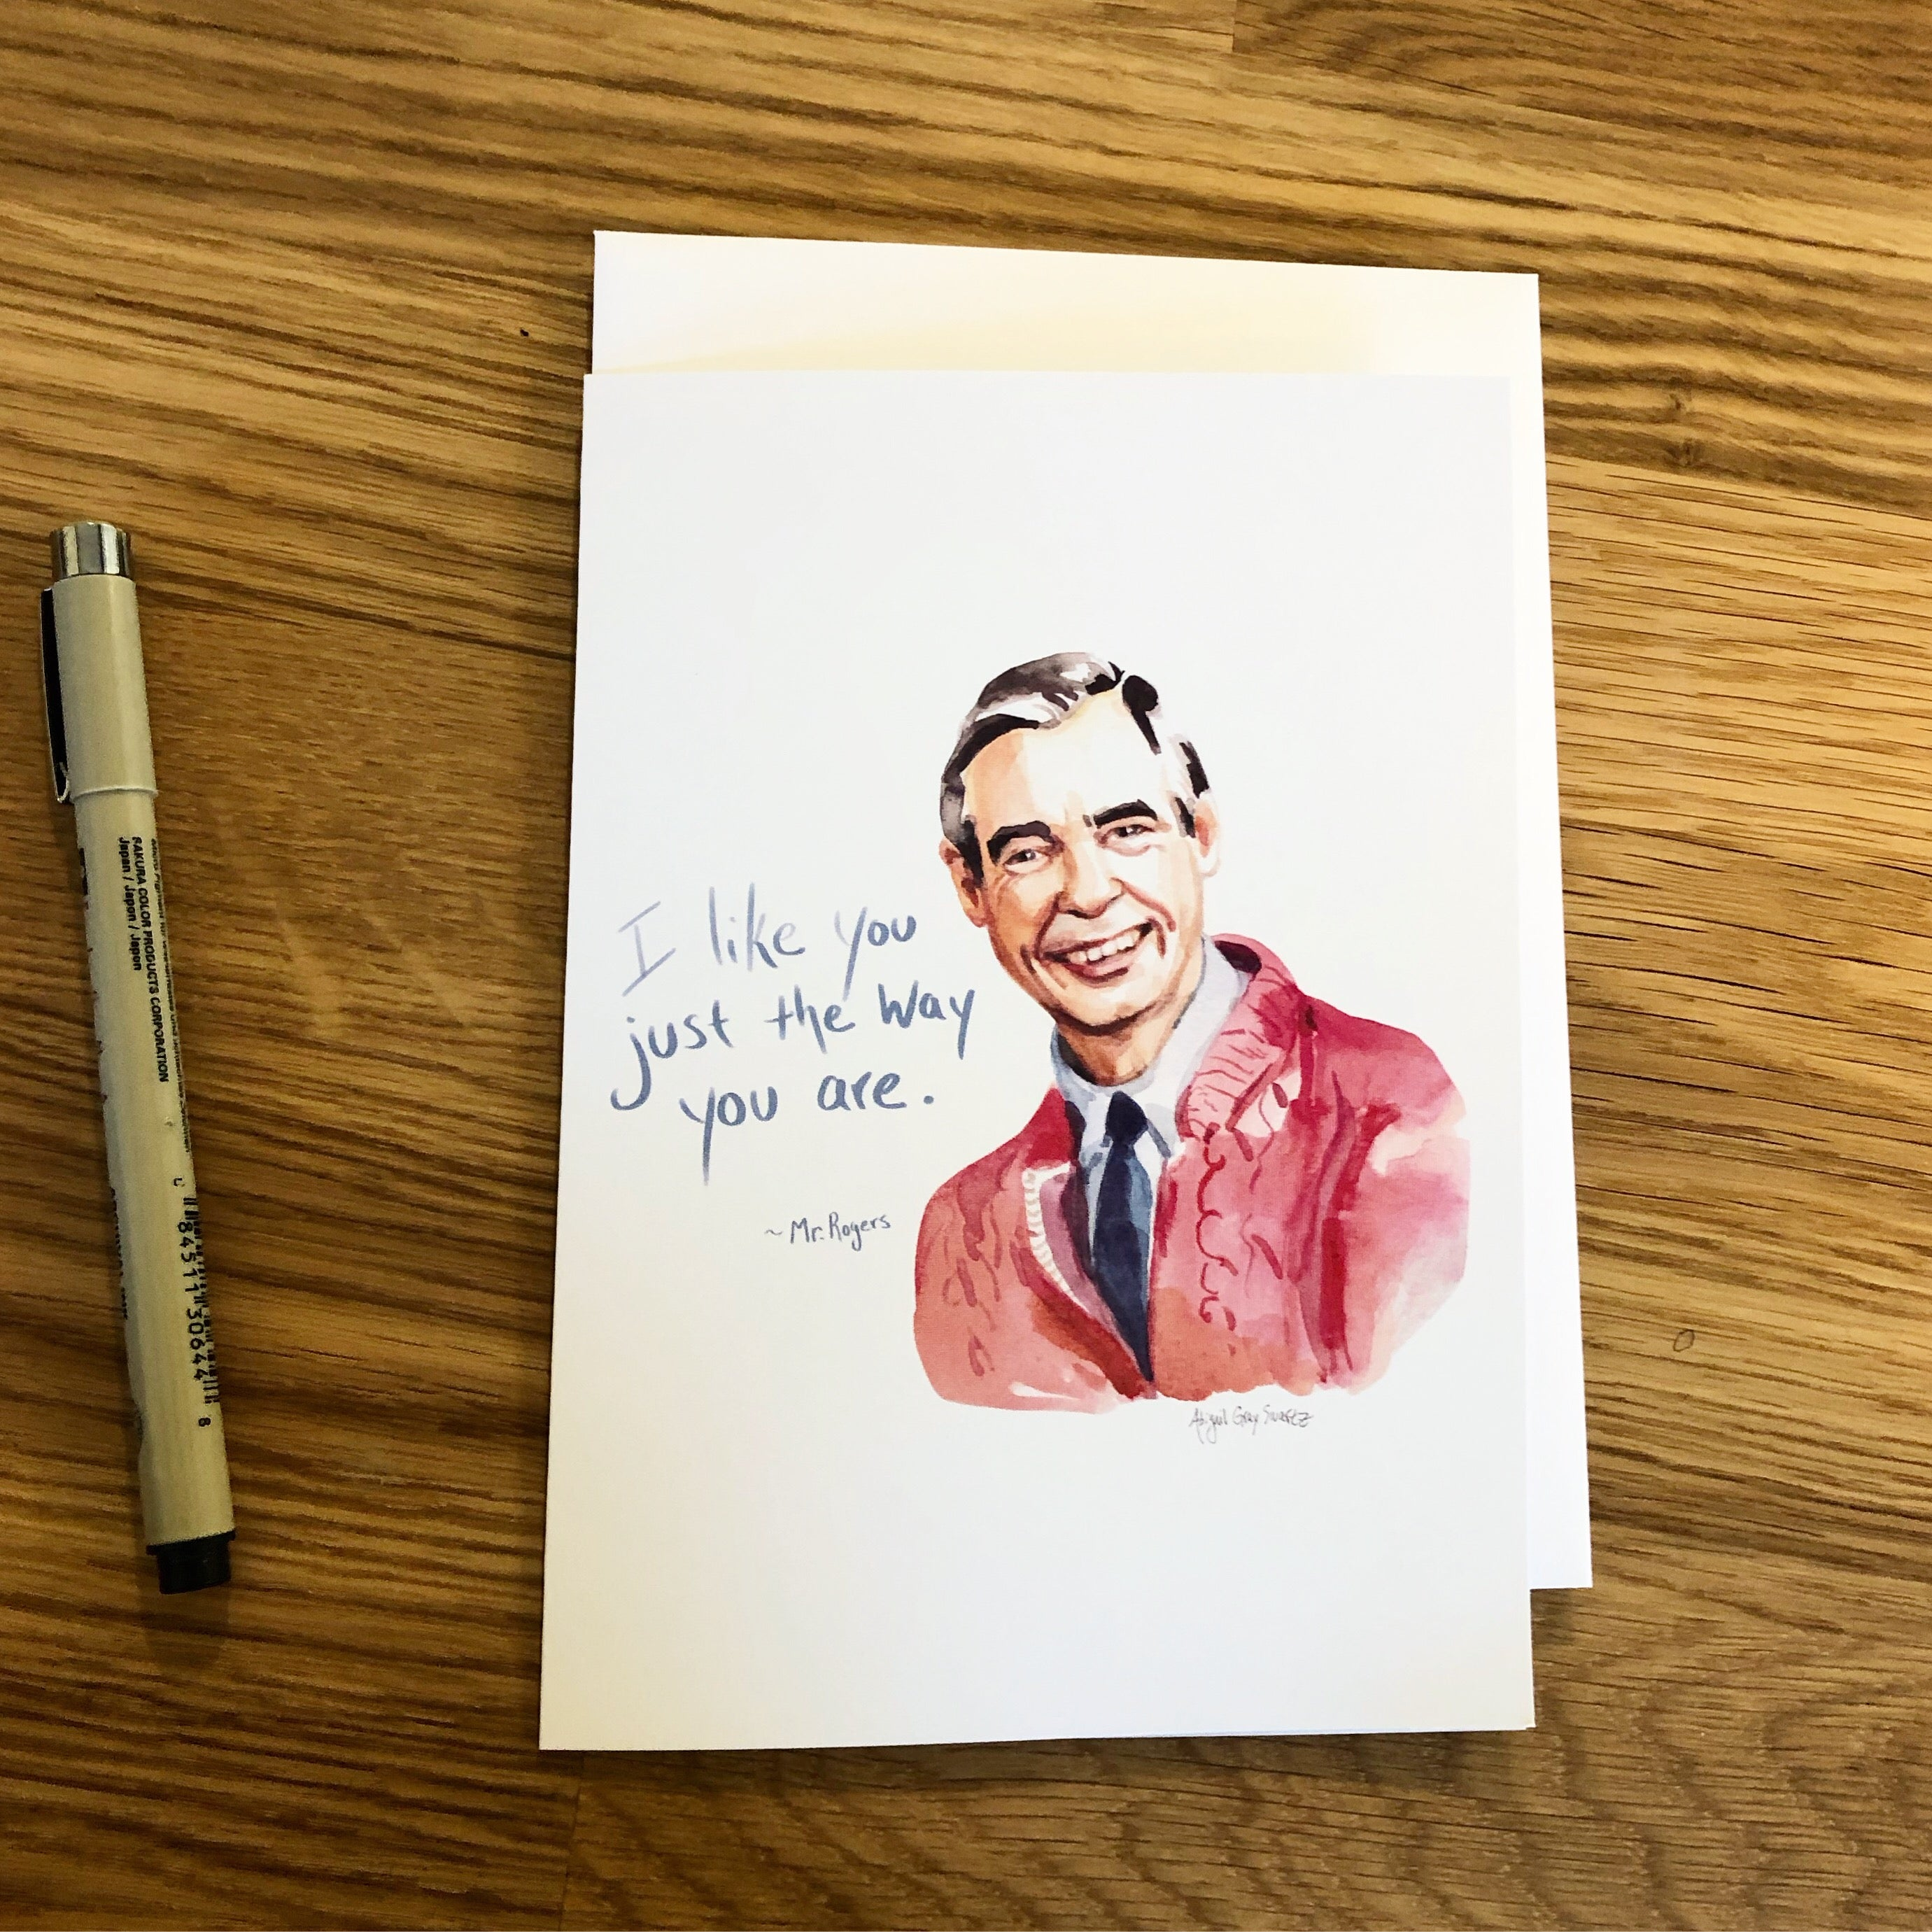 I like you just the way you are. Mr Rogers Portrait--Greeting Card